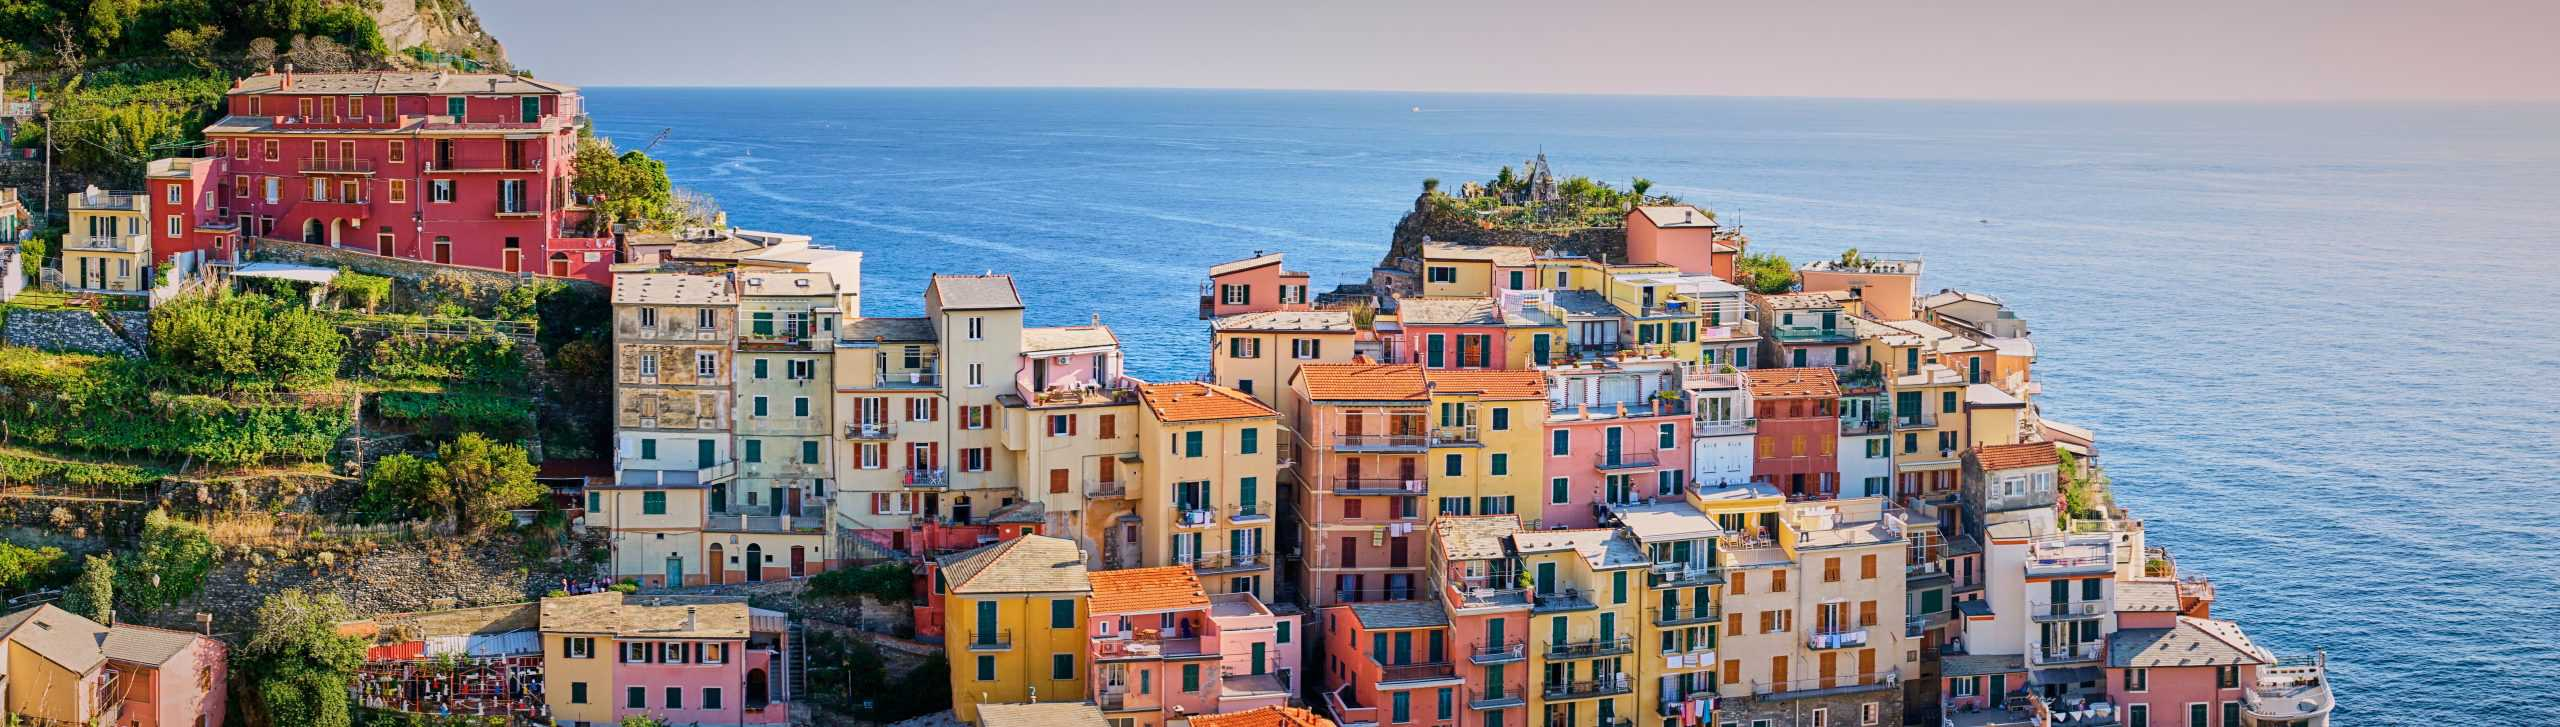 Cinque Terre, Italian Rivera, in September, the best time to visit for pleasant weather